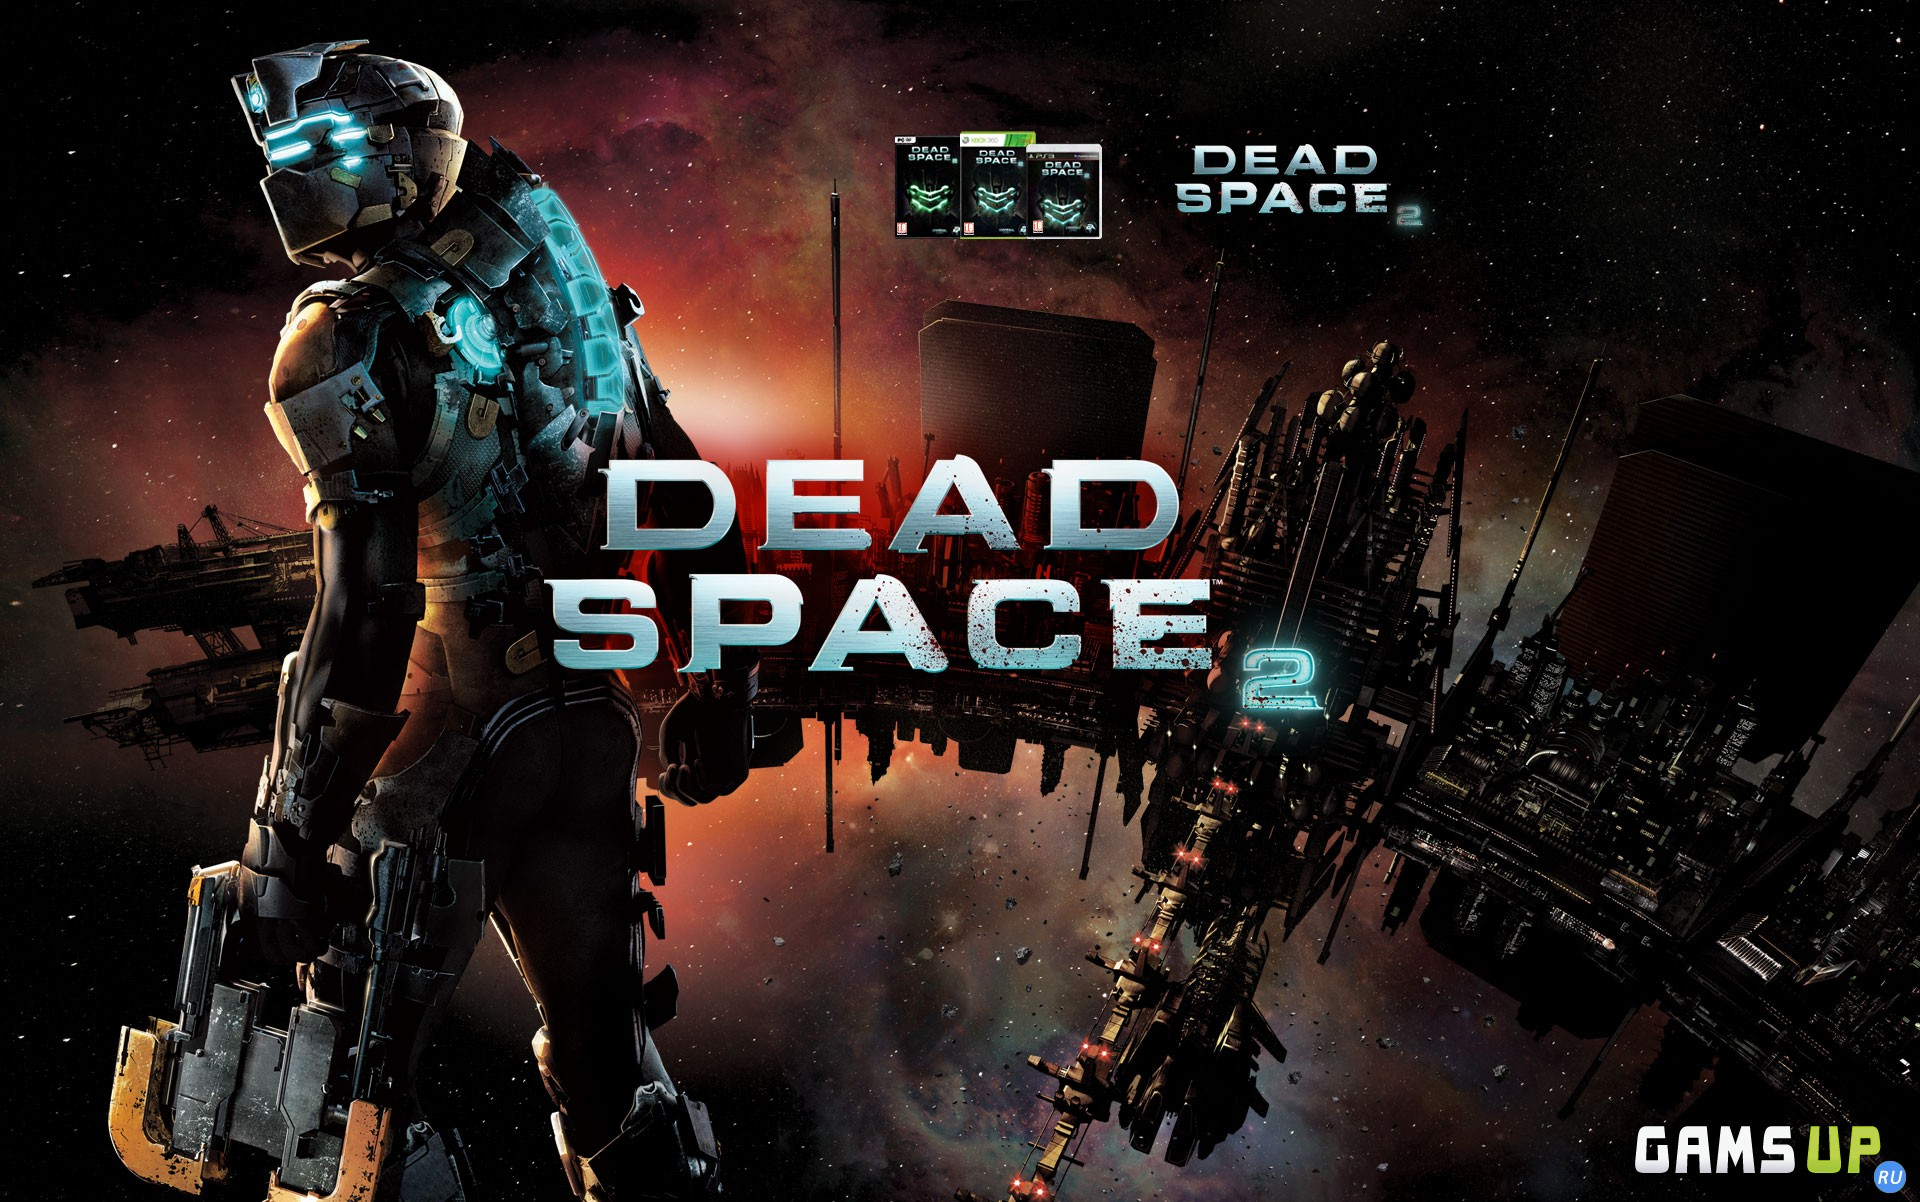 dead space 2 wallpapers 7 GAMSUP 1920x1202